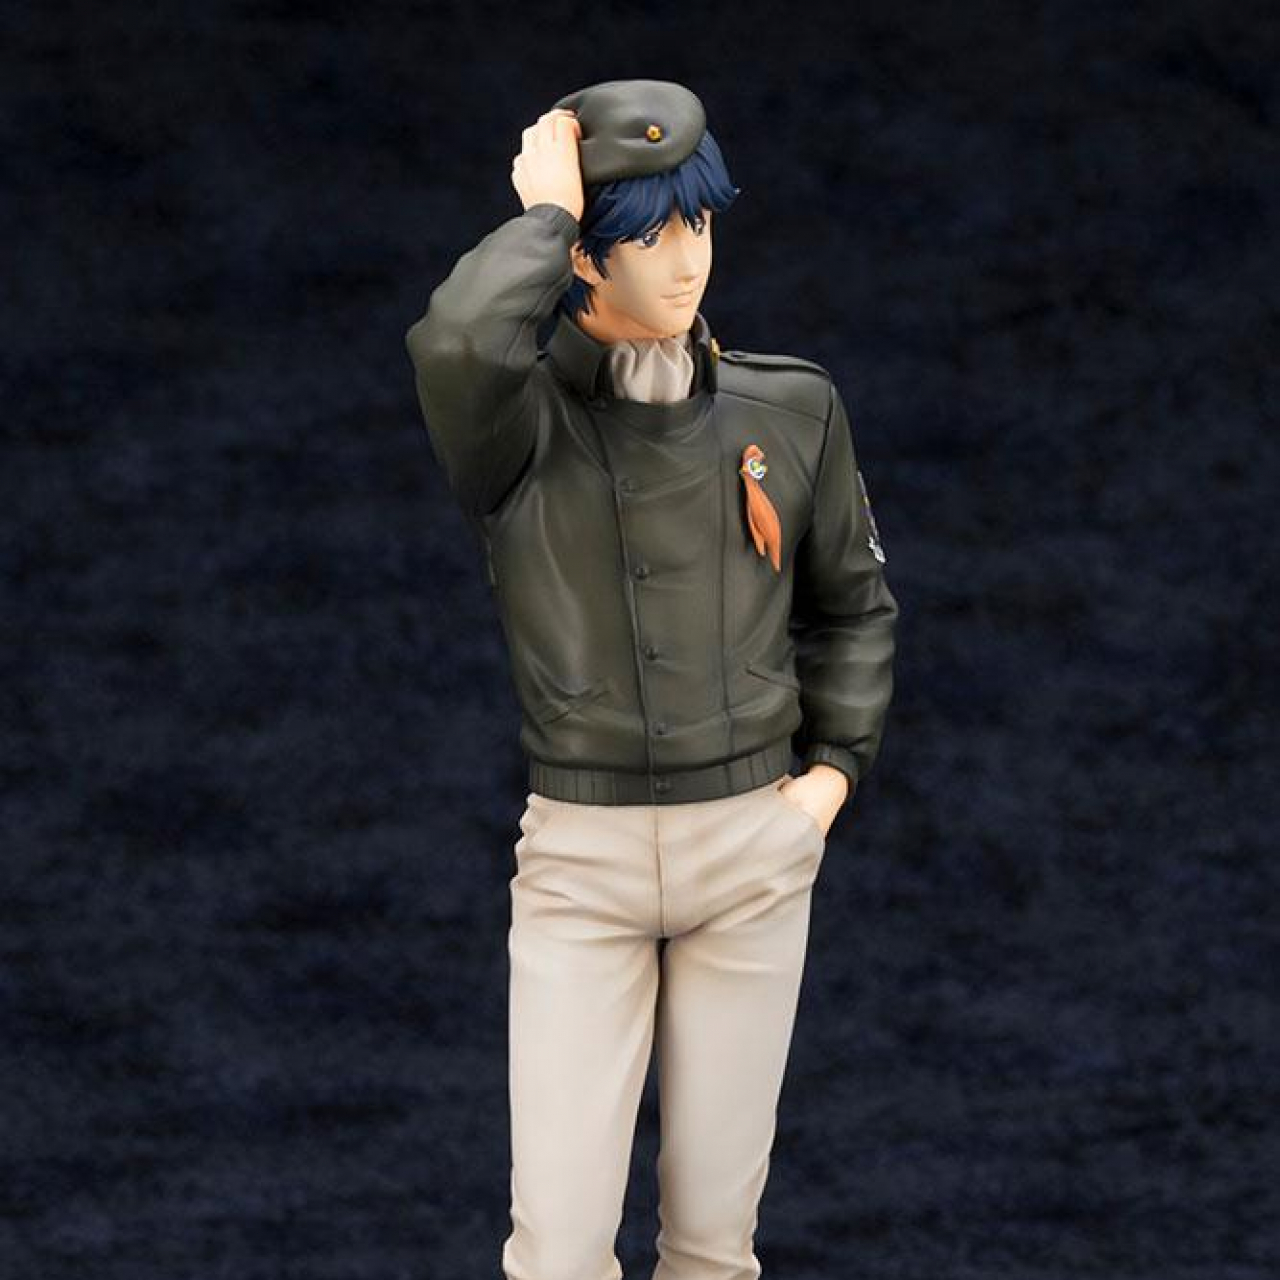 Legend of the Galactic Heroes ARTFXJ Statue 1/8 Yang Wen-li 25 cm